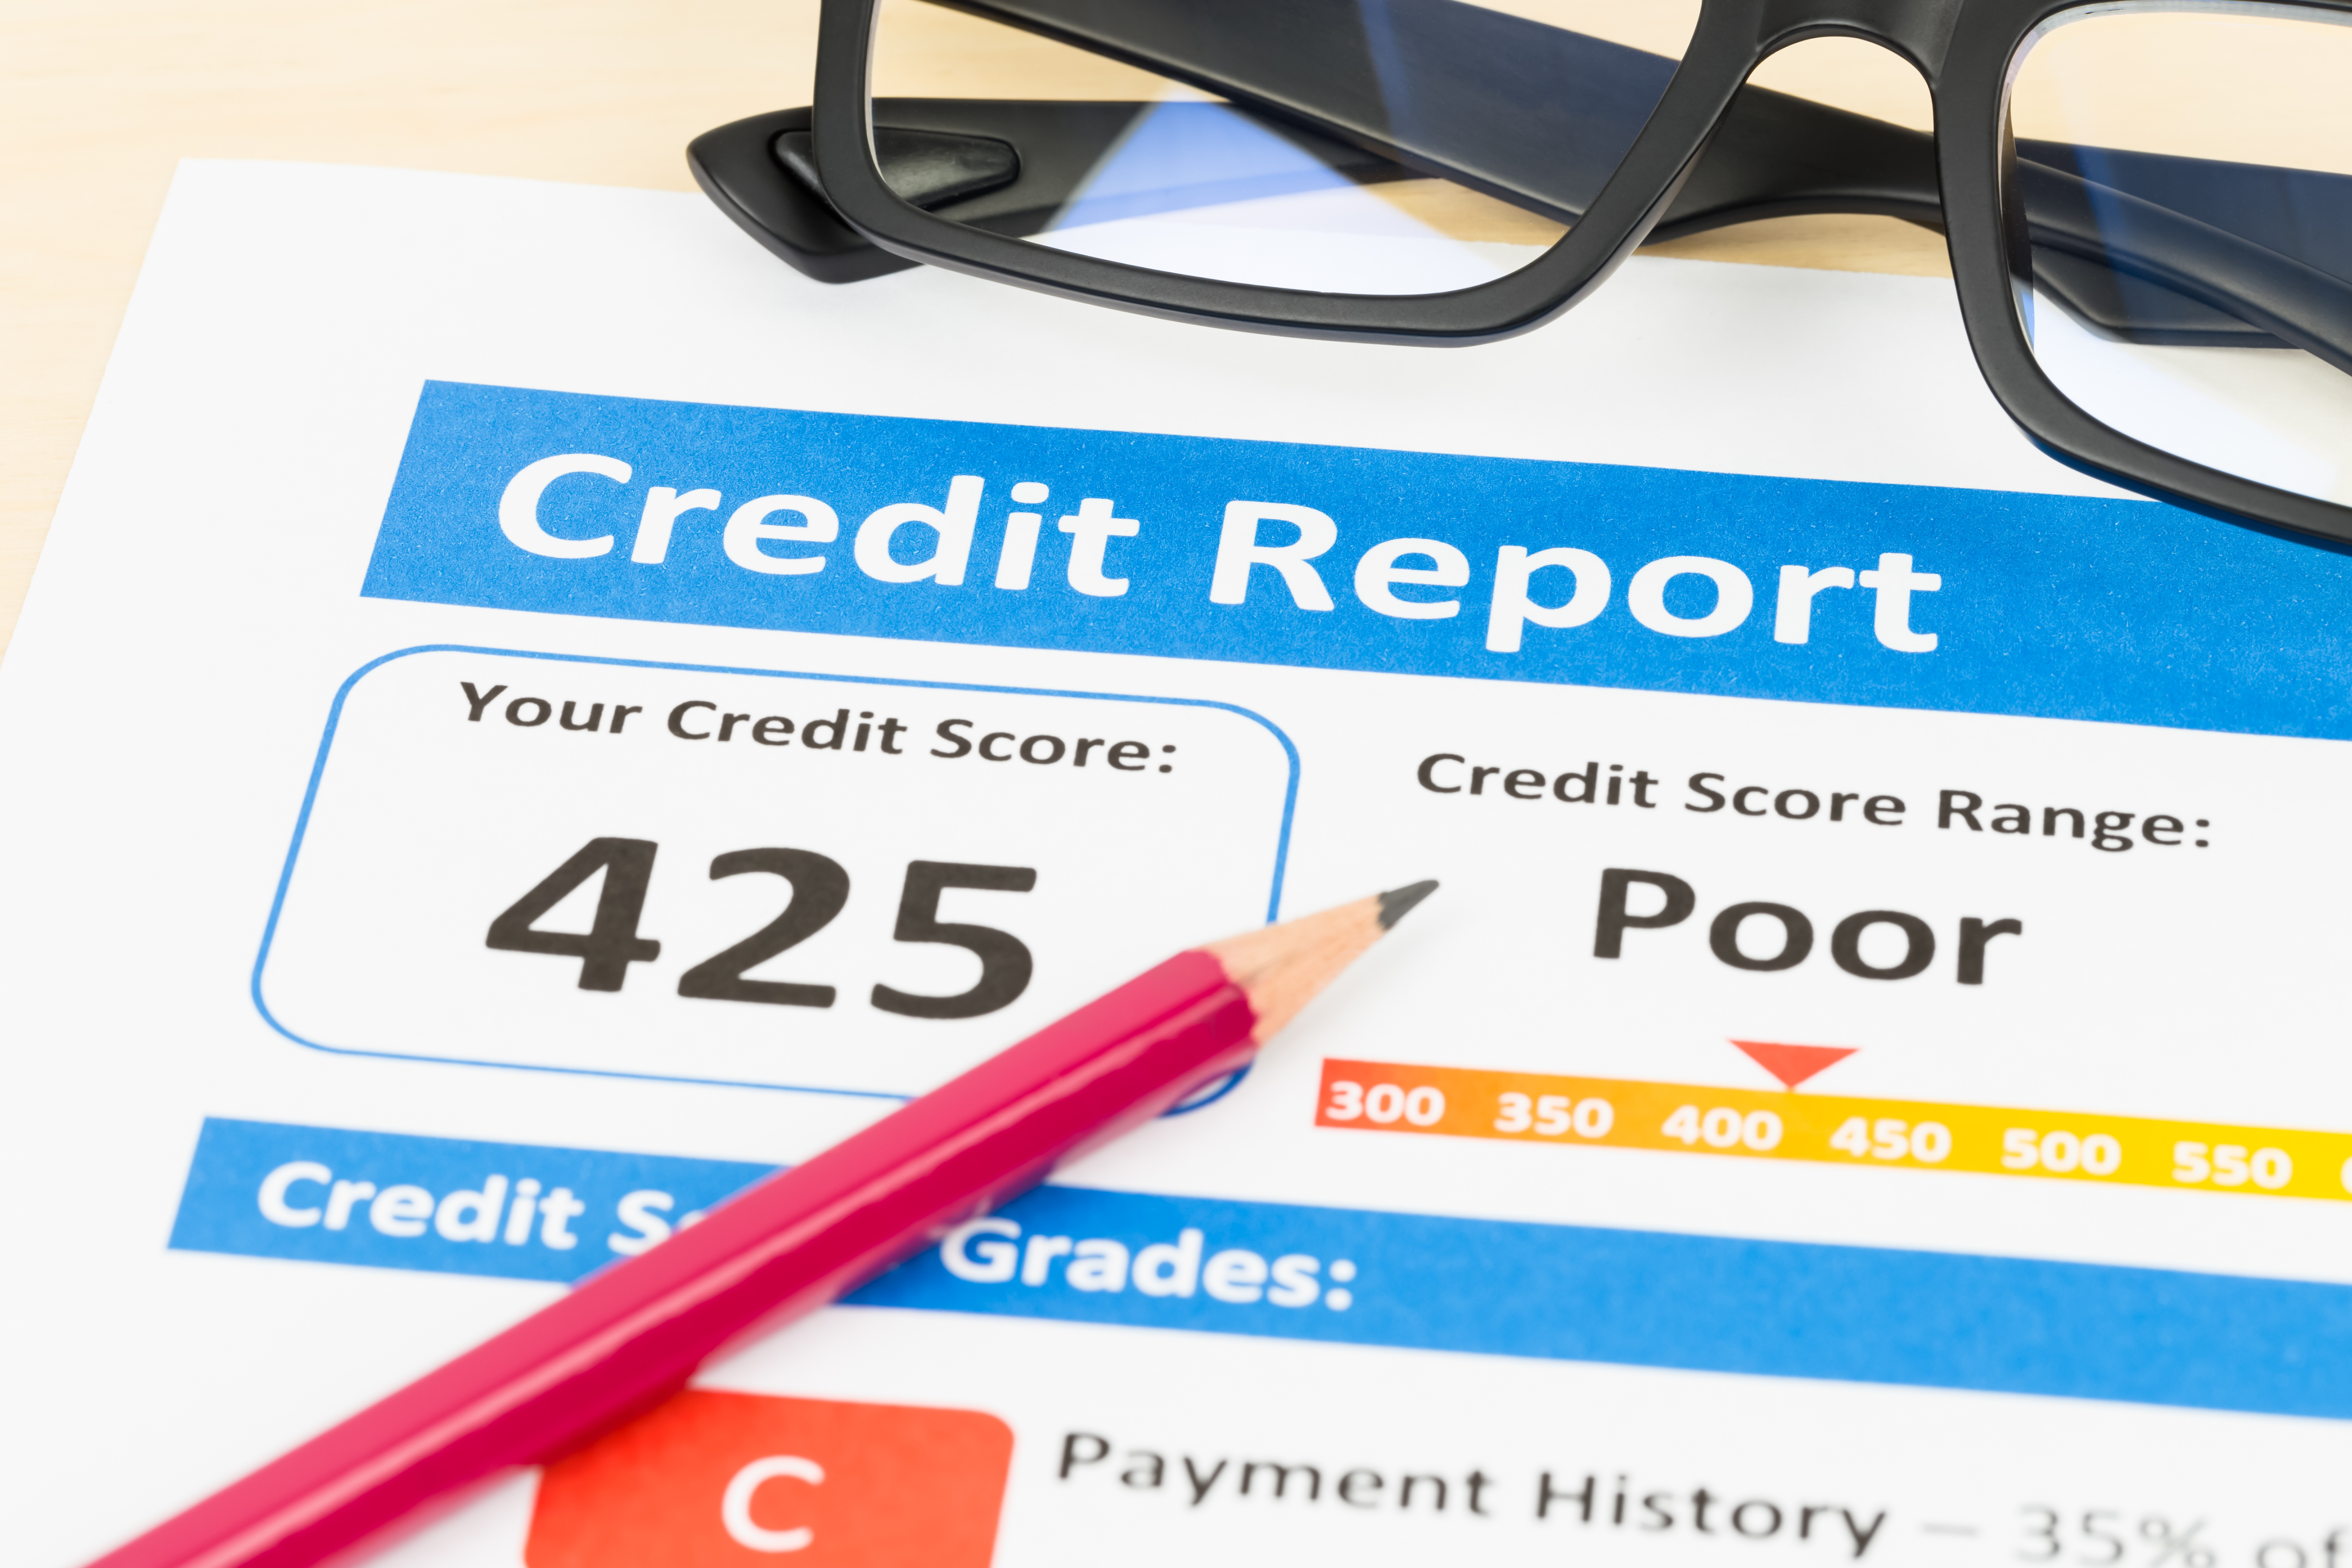 Poor credit report can see you denied for credit